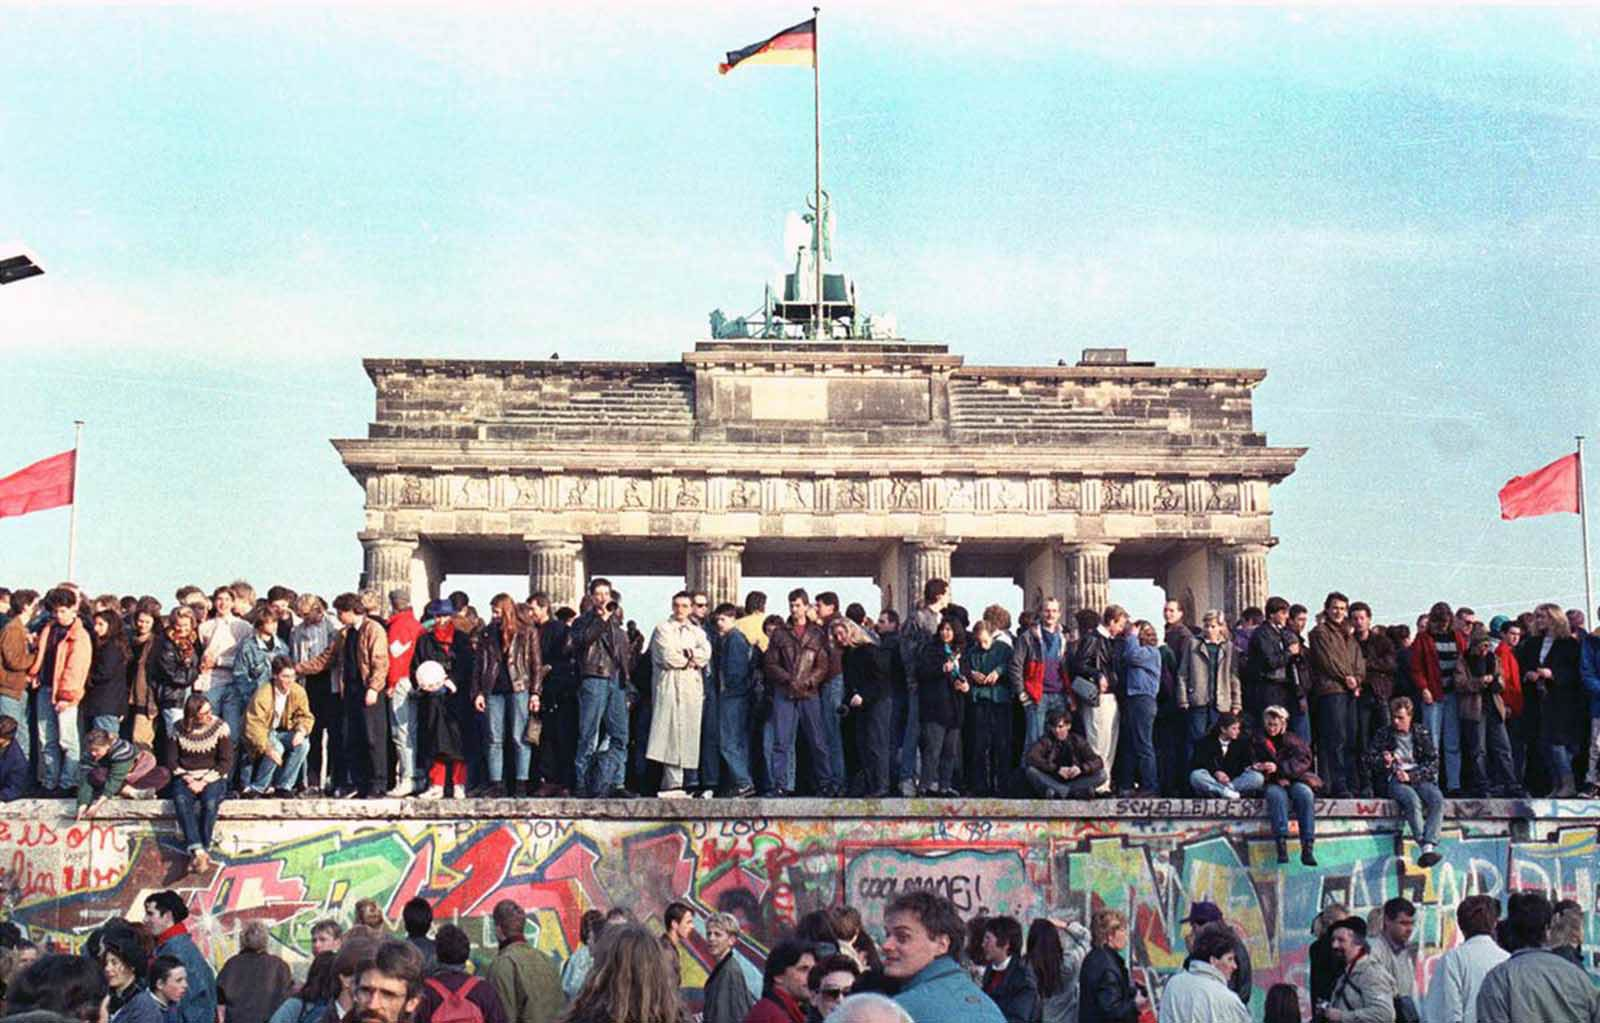 West Berlin citizens hold a vigil atop the Berlin Wall in front of the Brandenburg Gate on November 10, 1989, the day after the East German government opened the border between East and West Berlin.